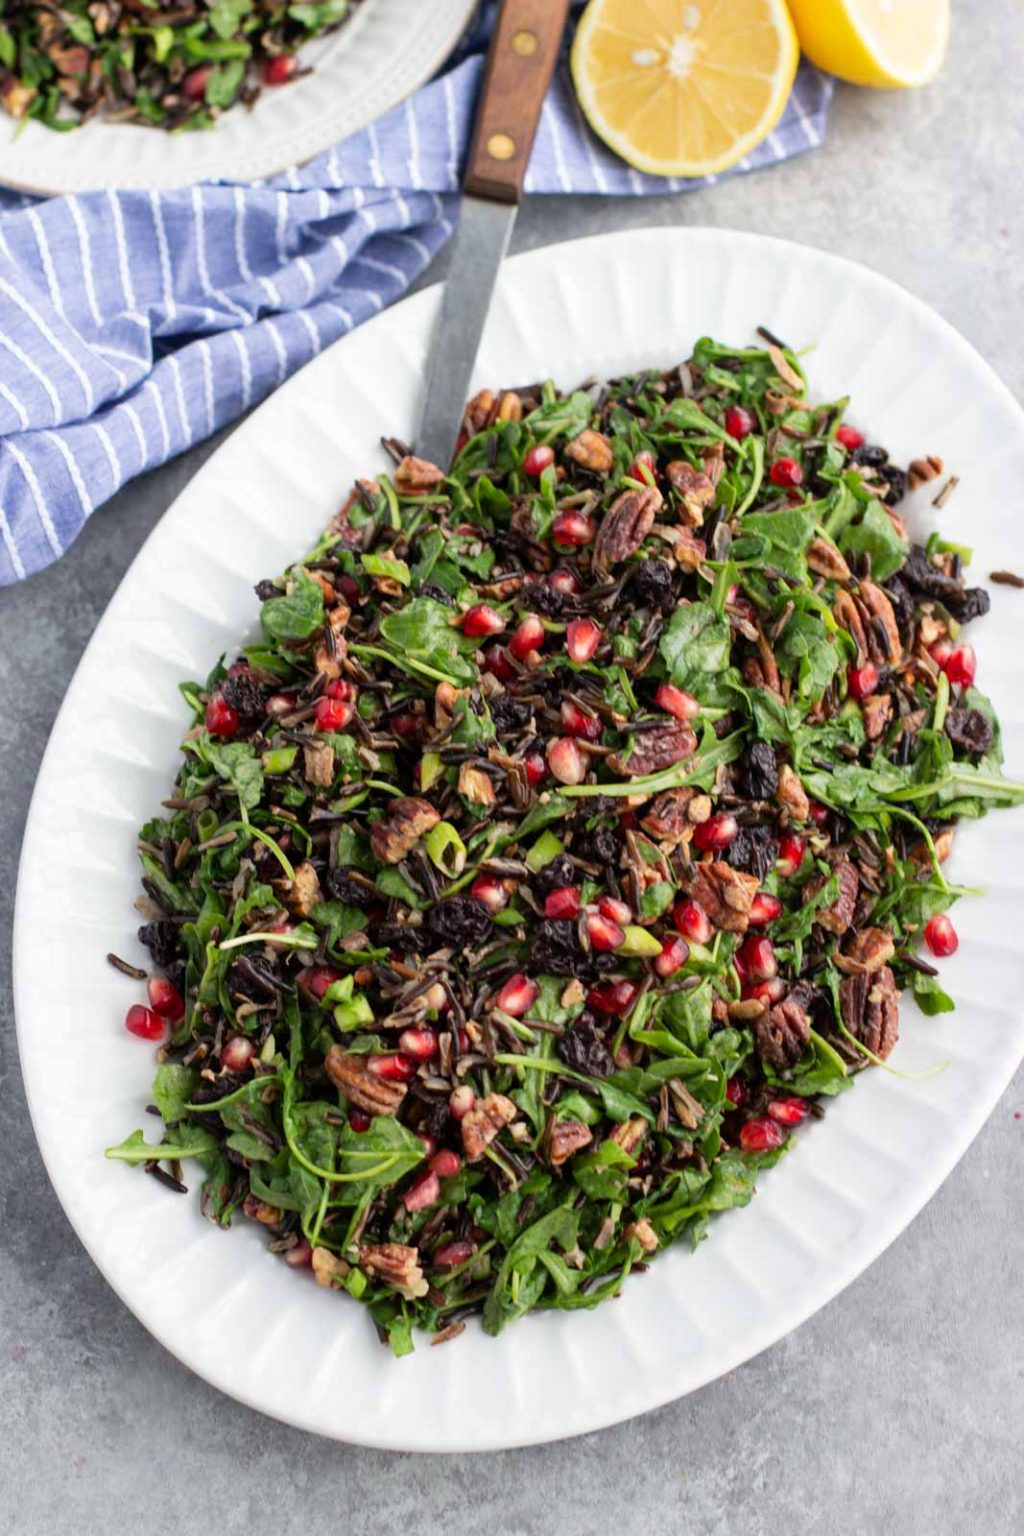 A white platter filled with arugula wild rice Christmas salad on a gray background.